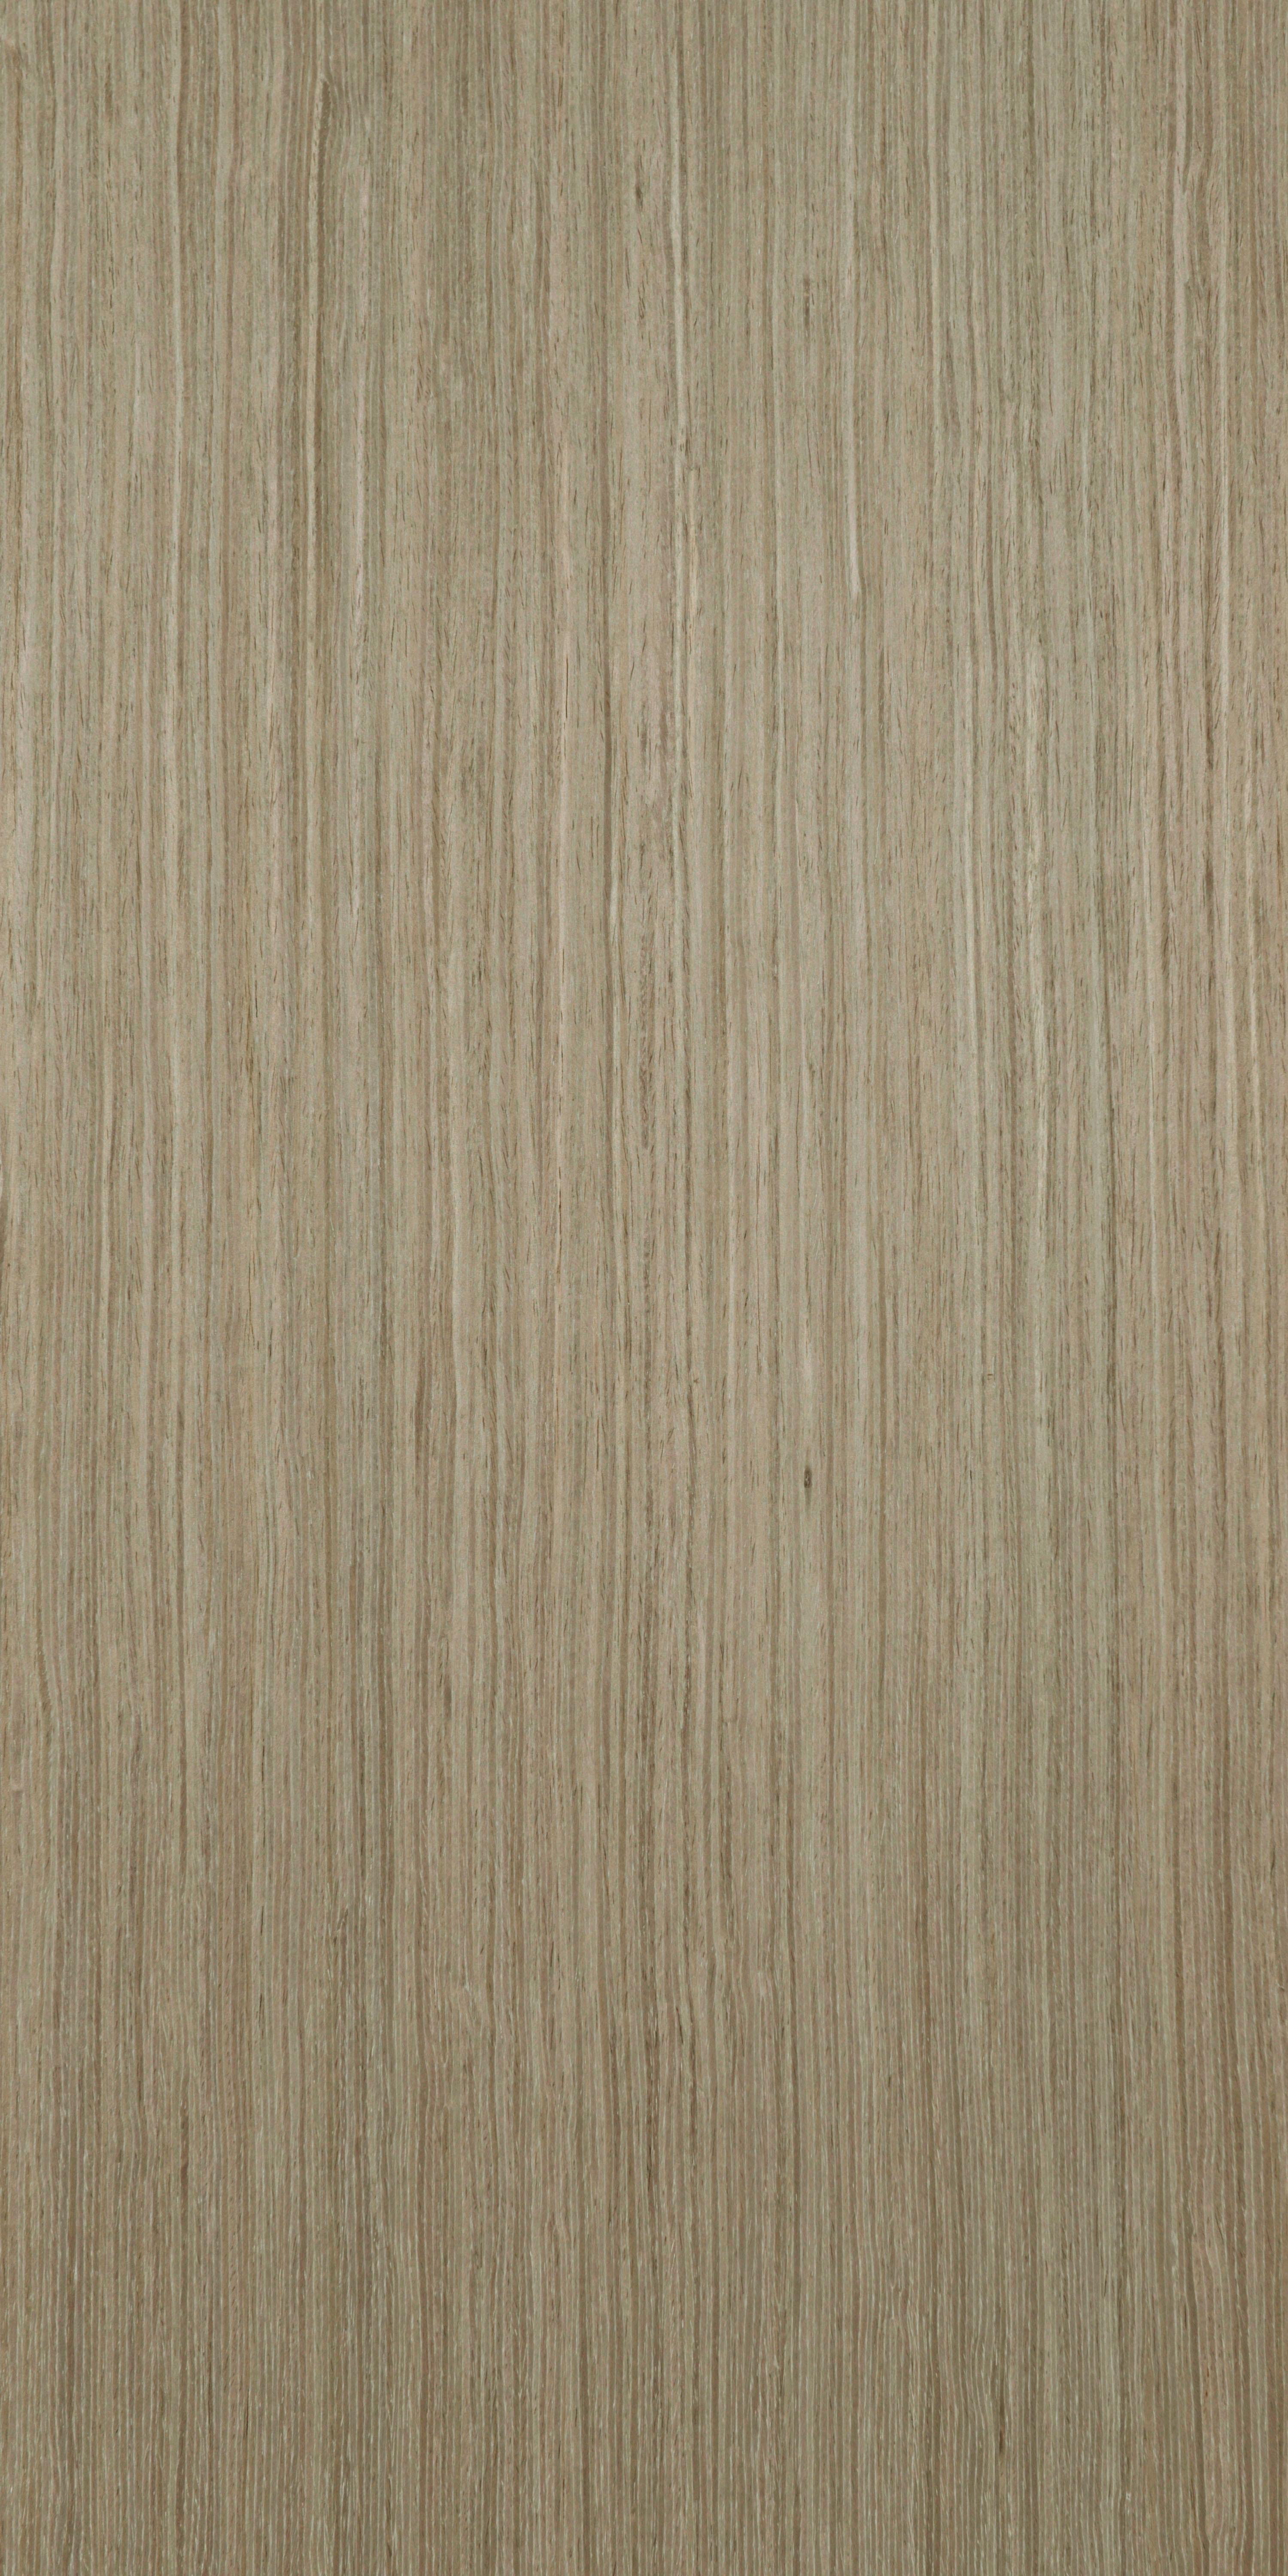 828 Recon Olive Oak Veneer plywood, Billiona Enterprise Singapore